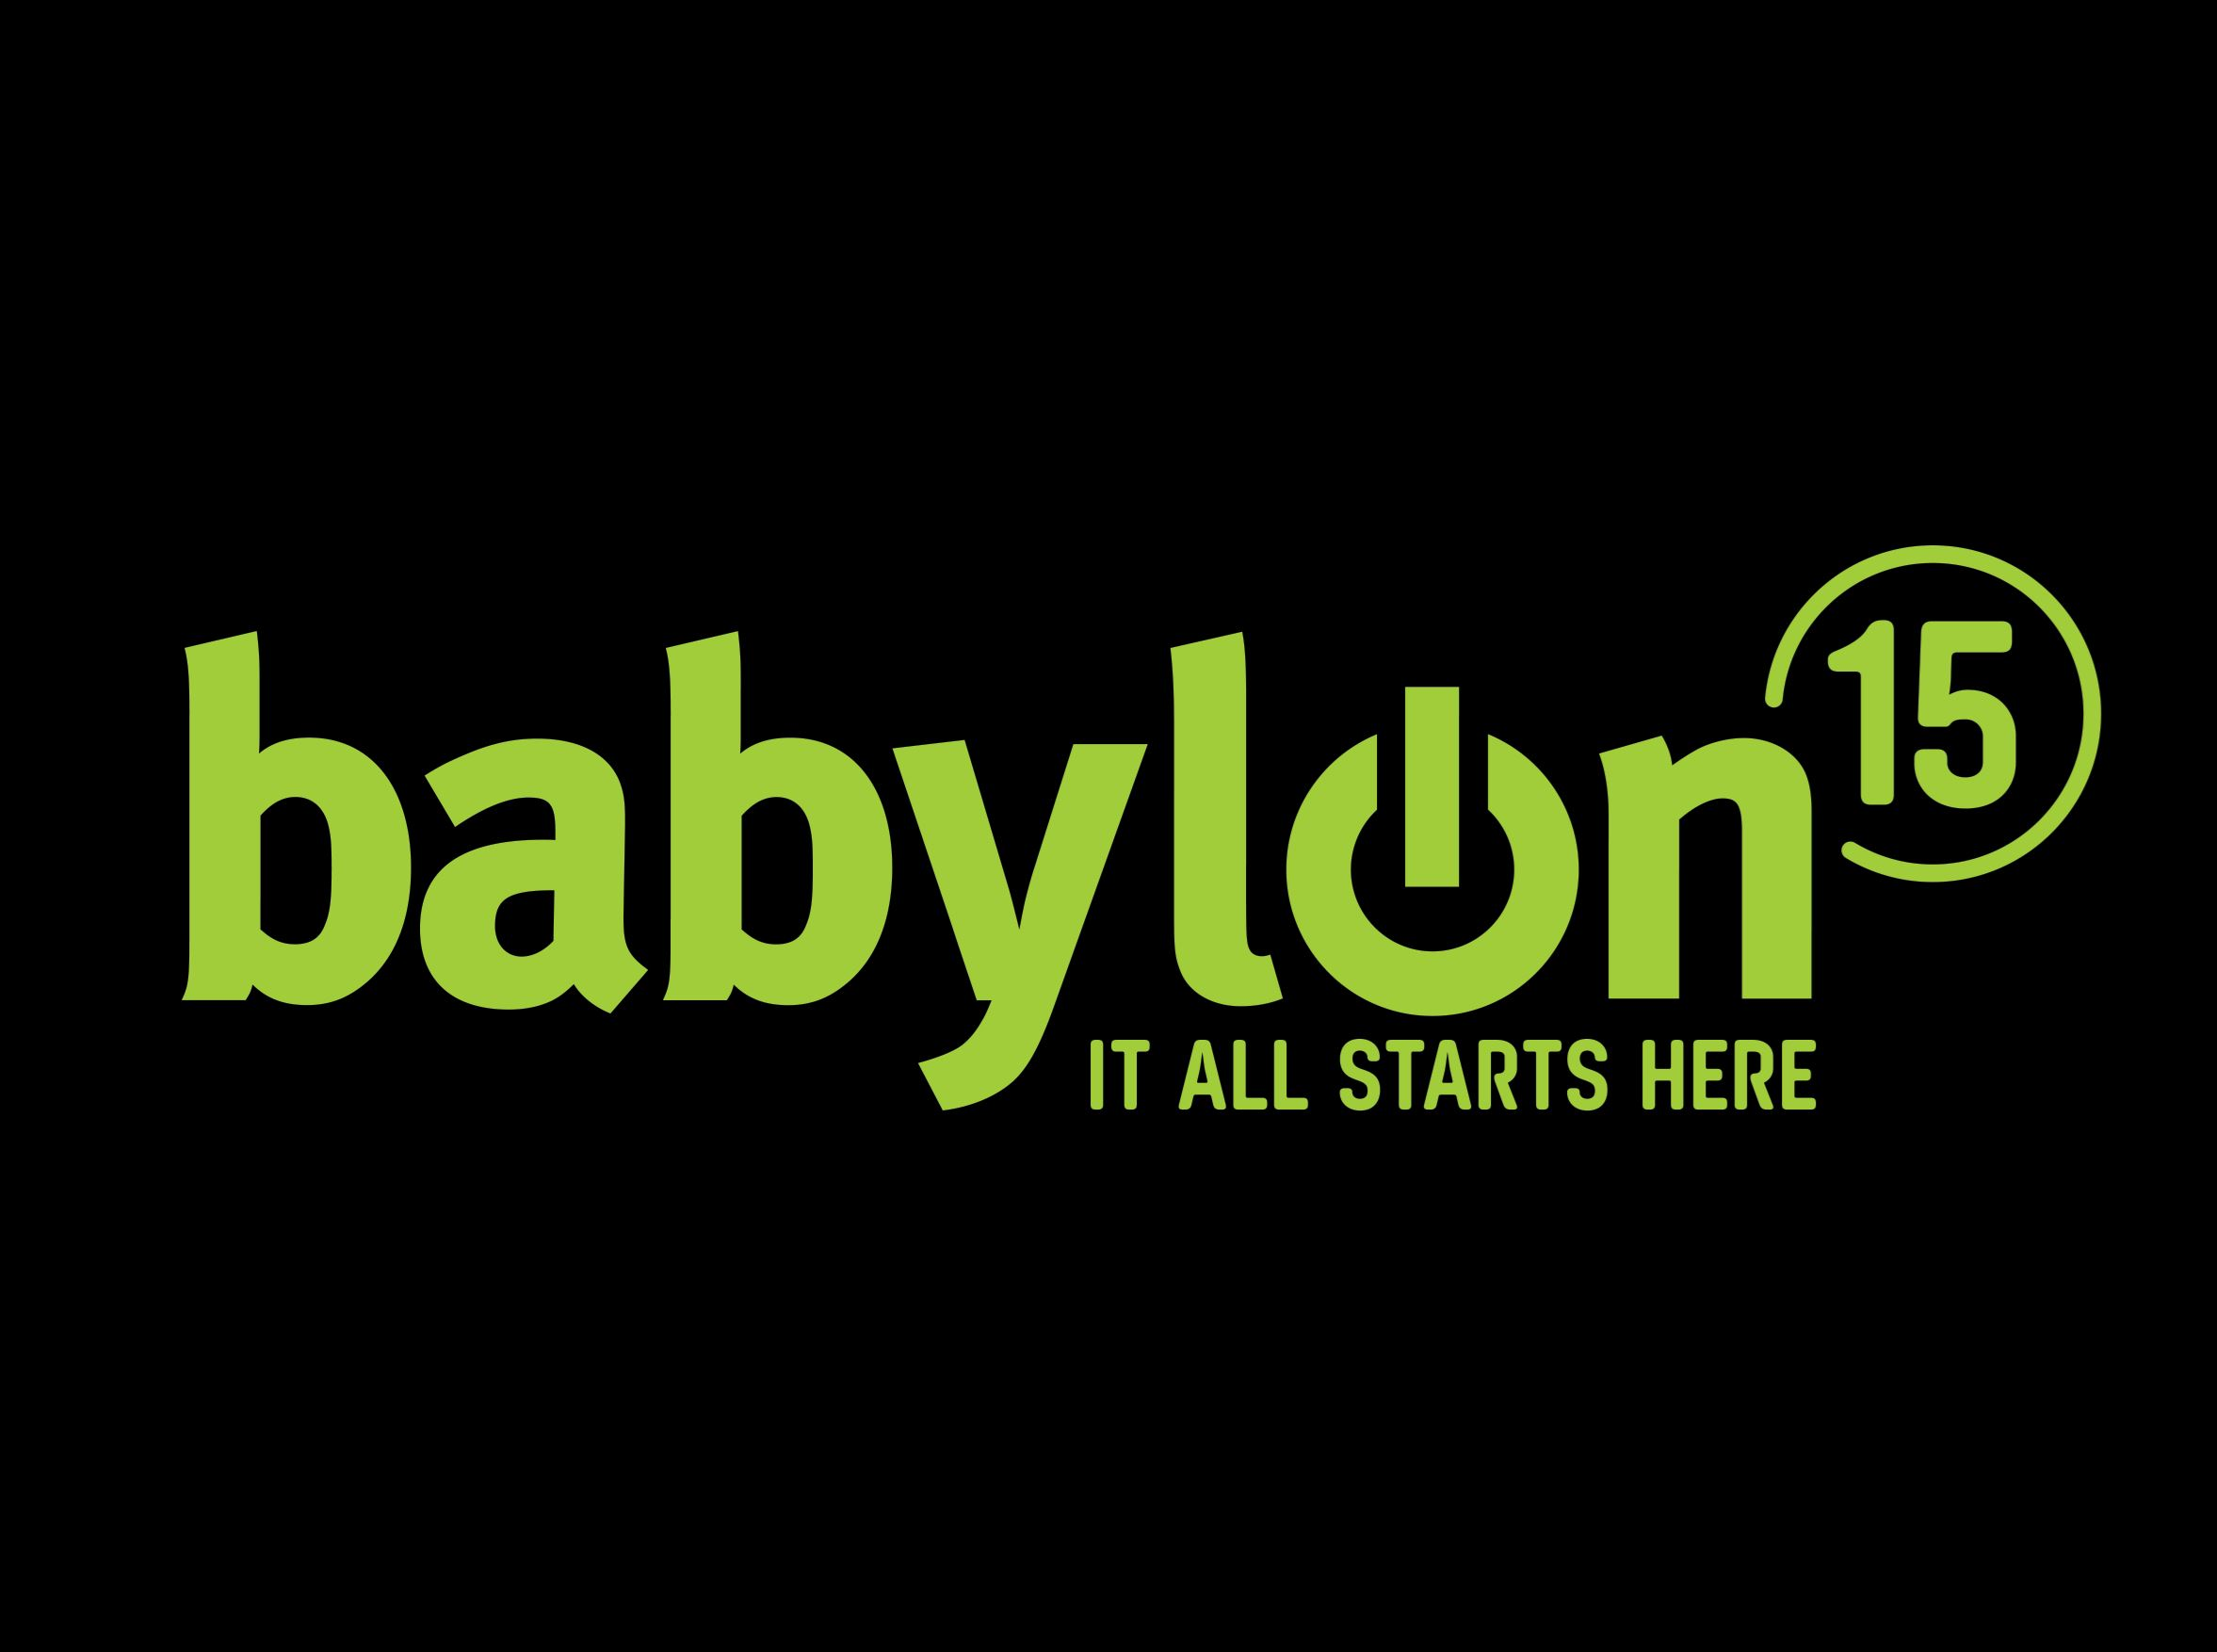 Babylon Jukebox – Sezon Açılış Partisi